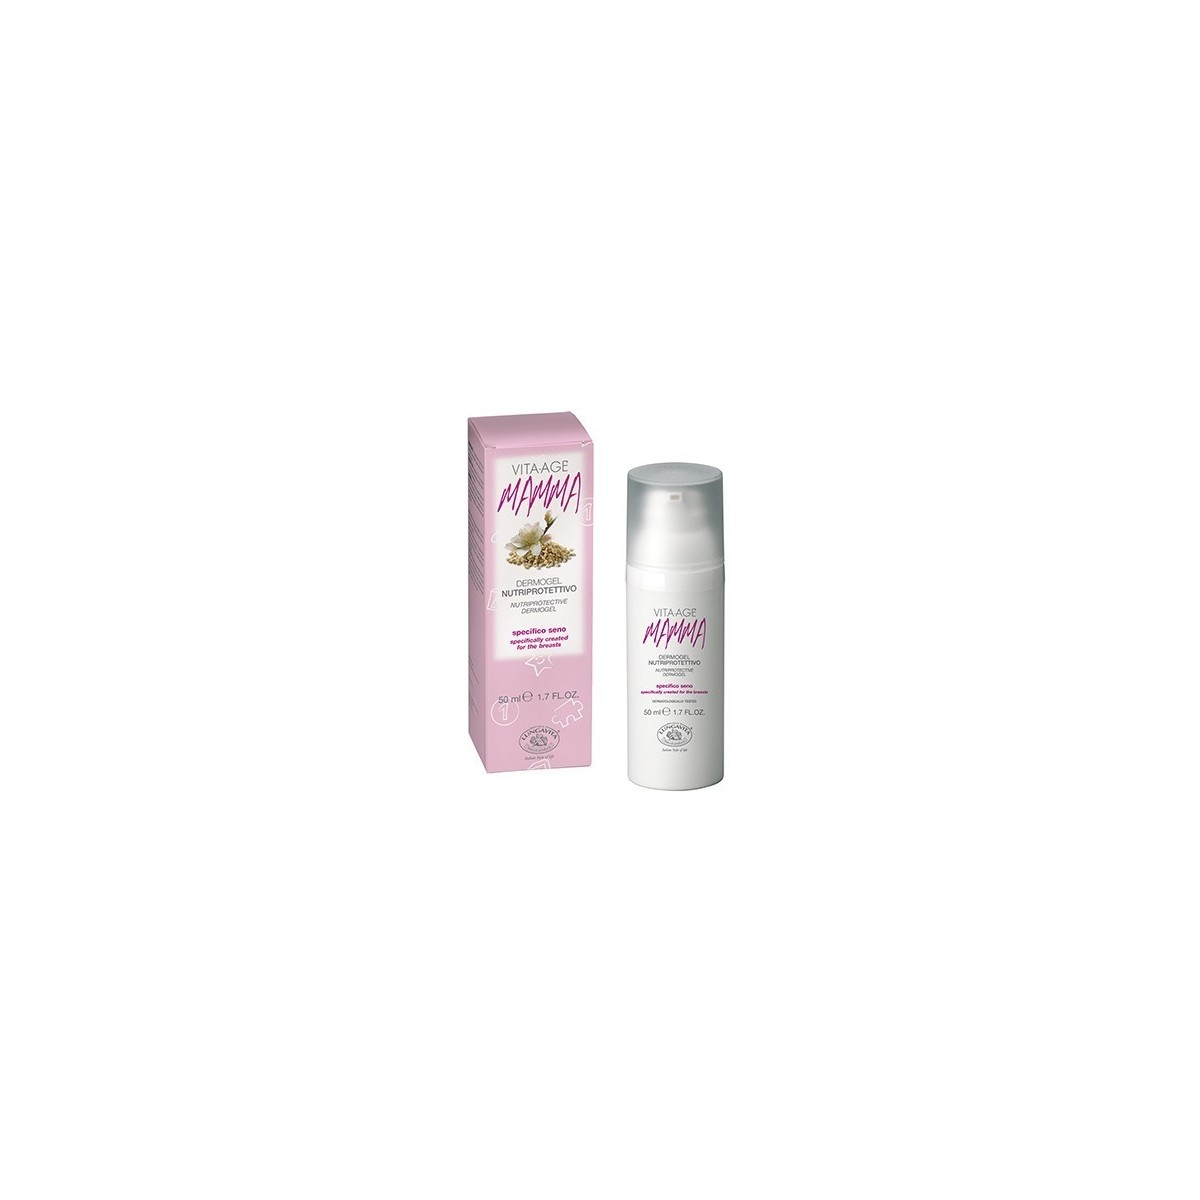 Bottega Di Lungavita Mamma Nutriprotective Dermogel For Breast Care During Pregnancy And Breastfeeding